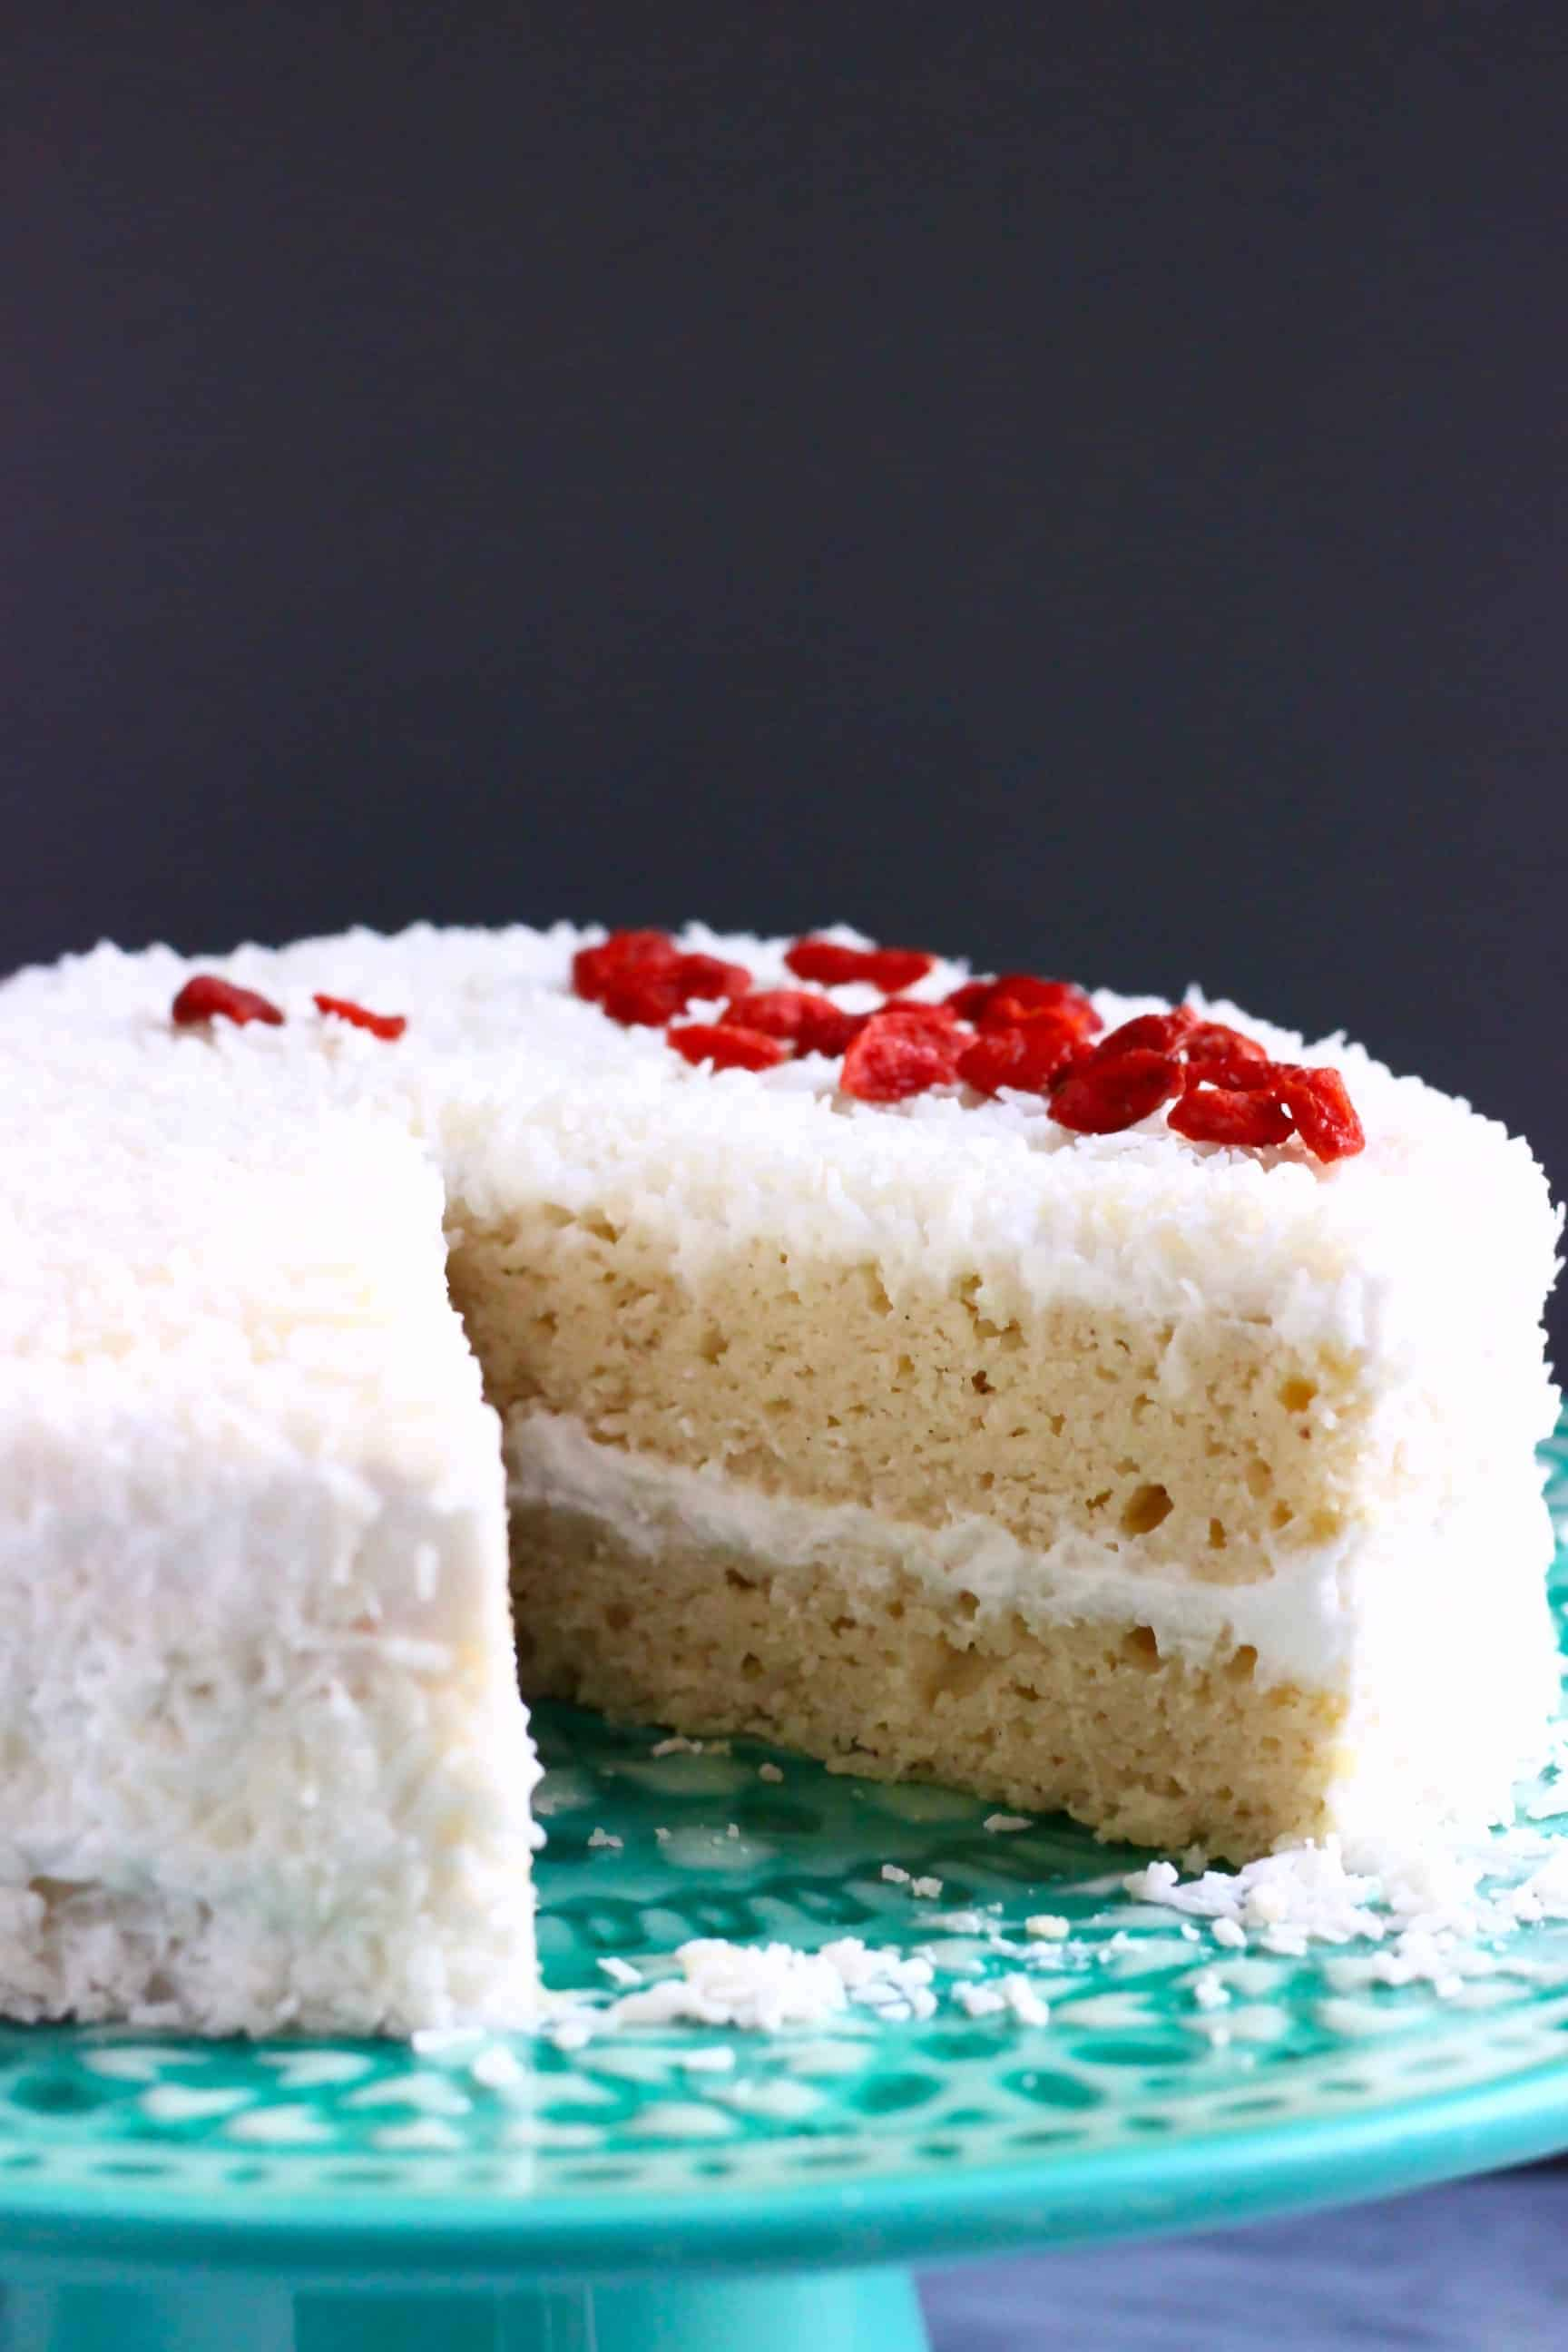 A white coconut cake covered in creamy frosting and coconut sprinkled with red goji berries against a dark grey background